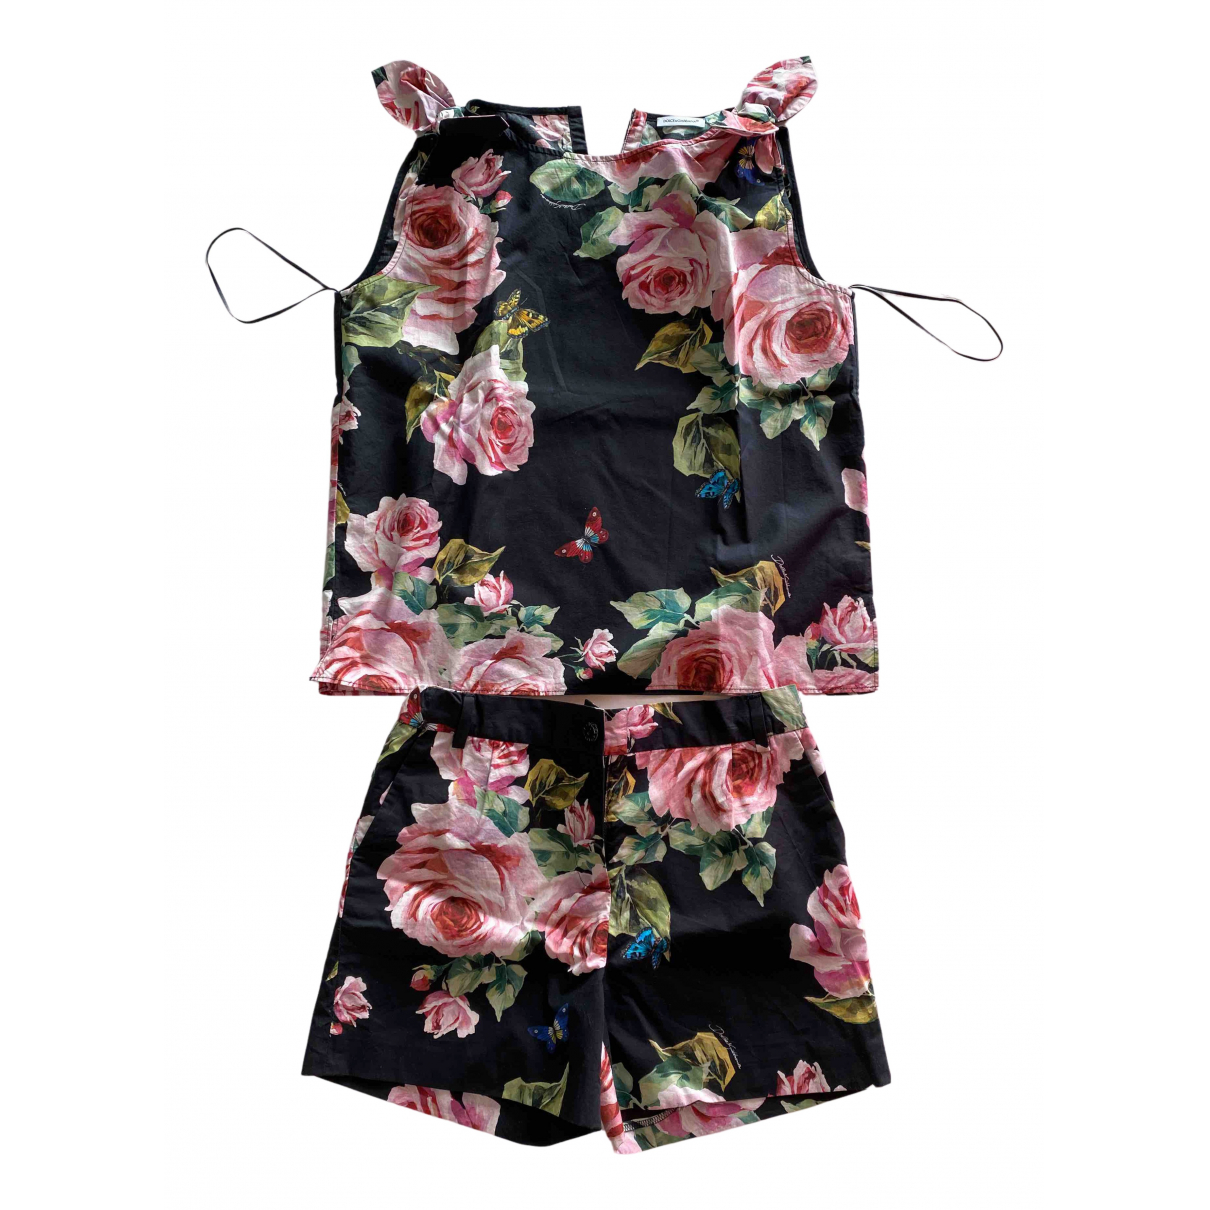 Dolce & Gabbana N Black Cotton Outfits for Kids 8 years - up to 128cm FR